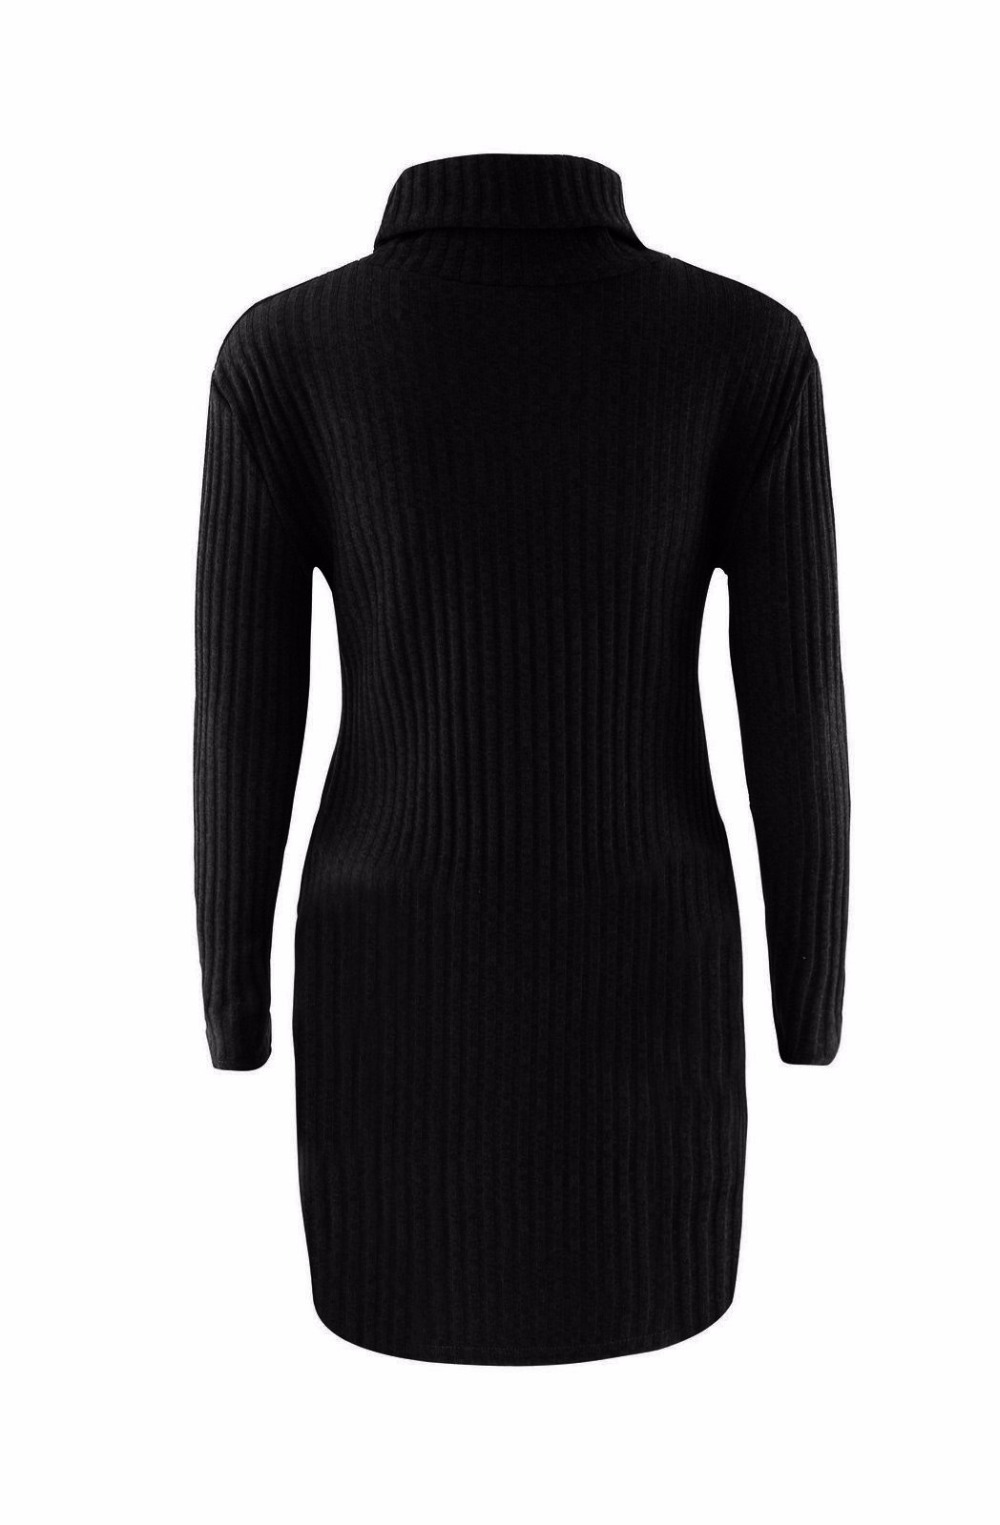 Turtleneck Long knitted pullover sweater, Women's Jumper, Casual Sweater 40